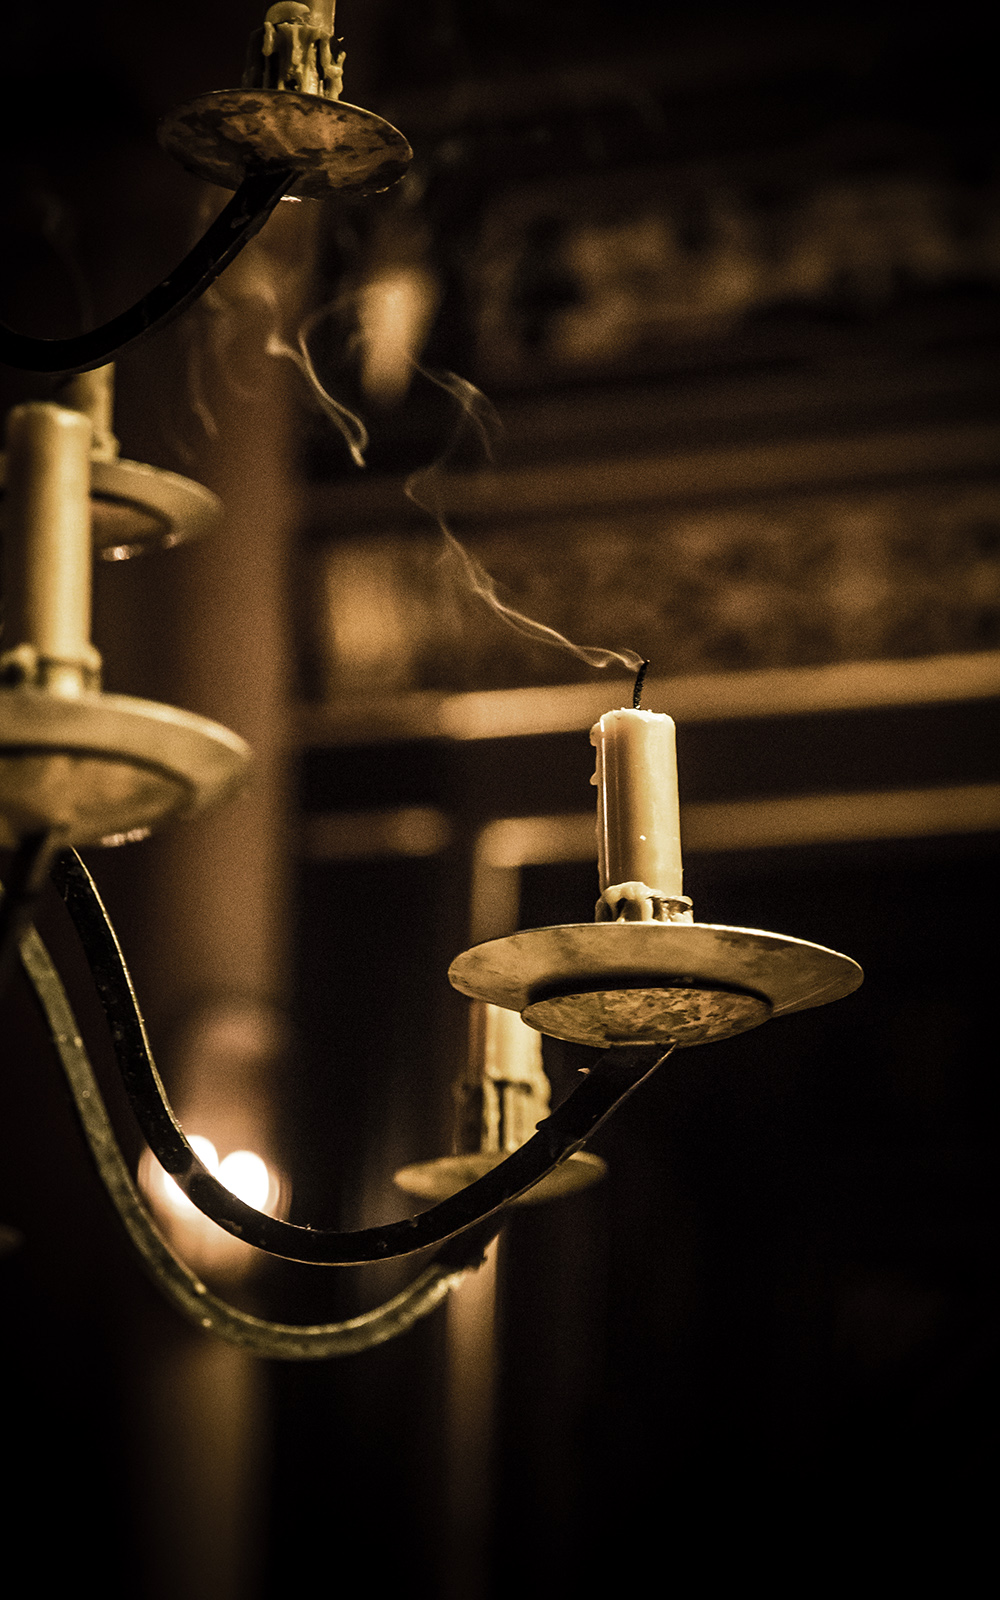 Smoke rises from a candle that has recently been extinguished.